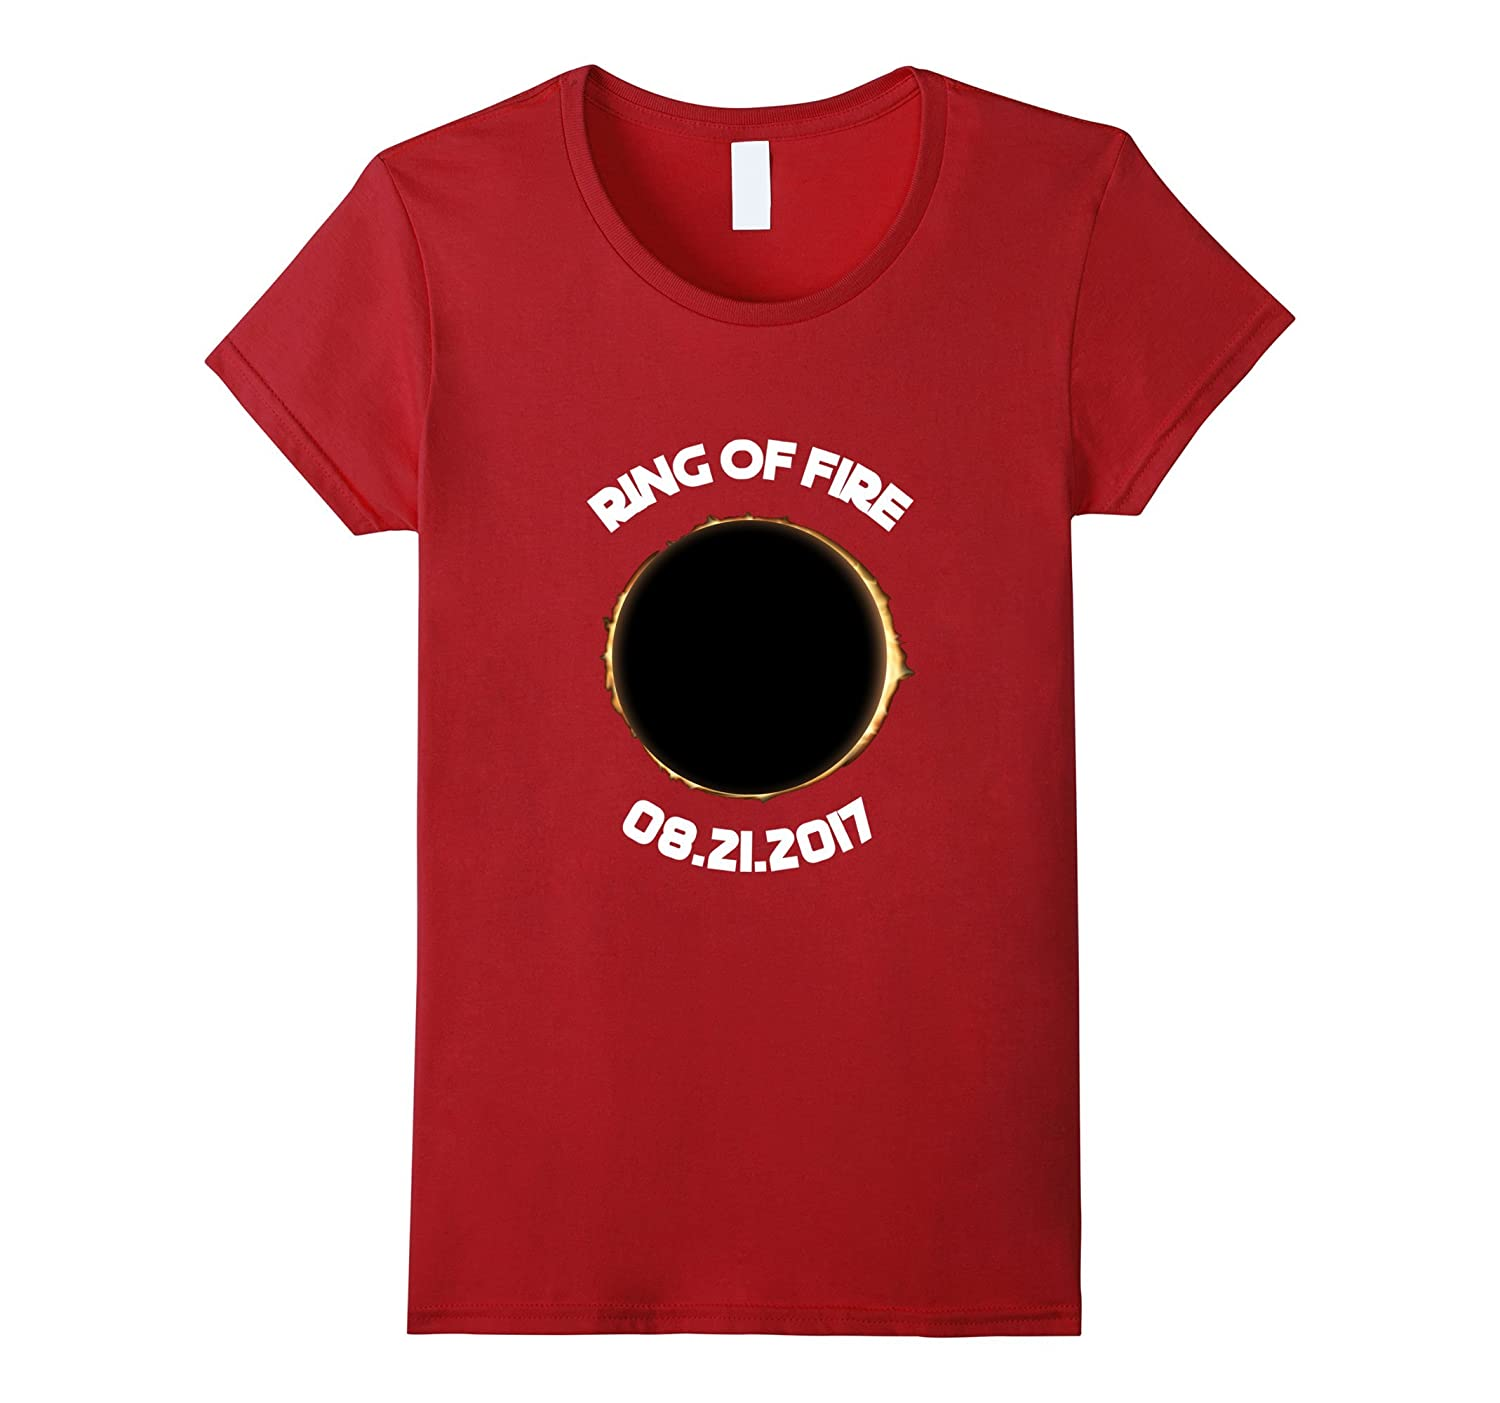 USA Solar Eclipse 2017 Ring of Fire T-shirt